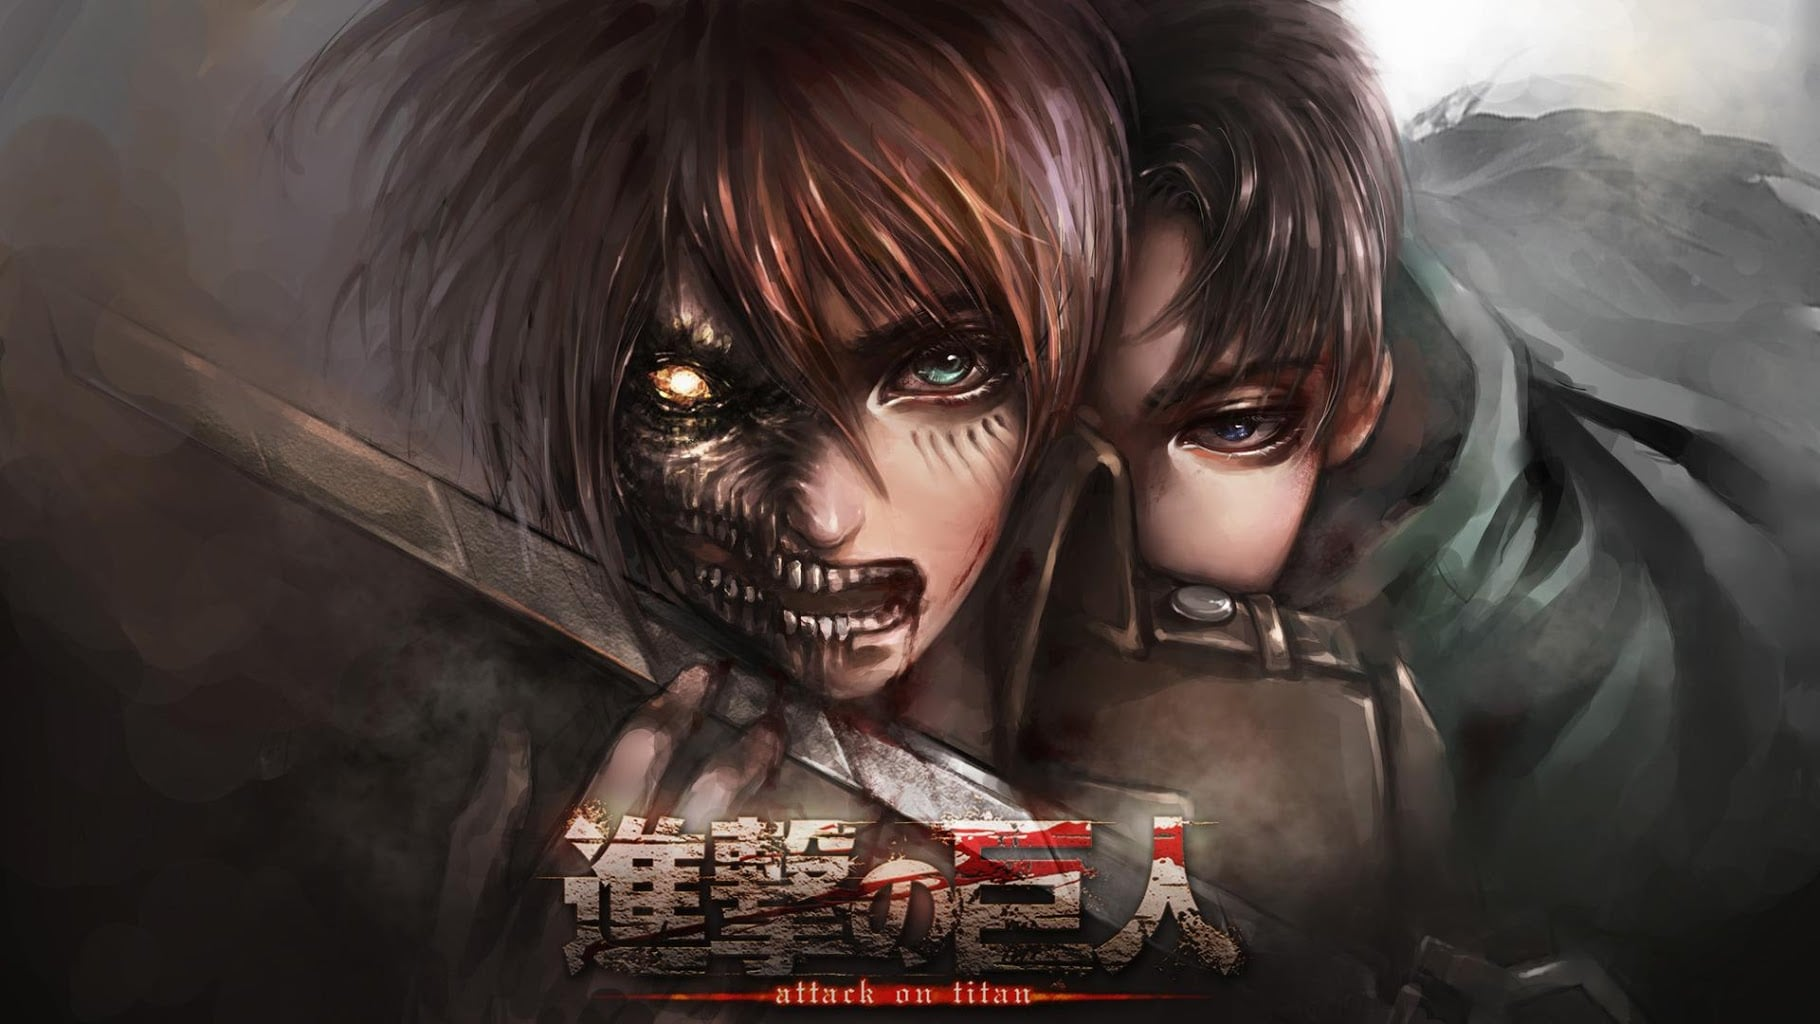 24 Attack On Titan Wallpapers Hd Download